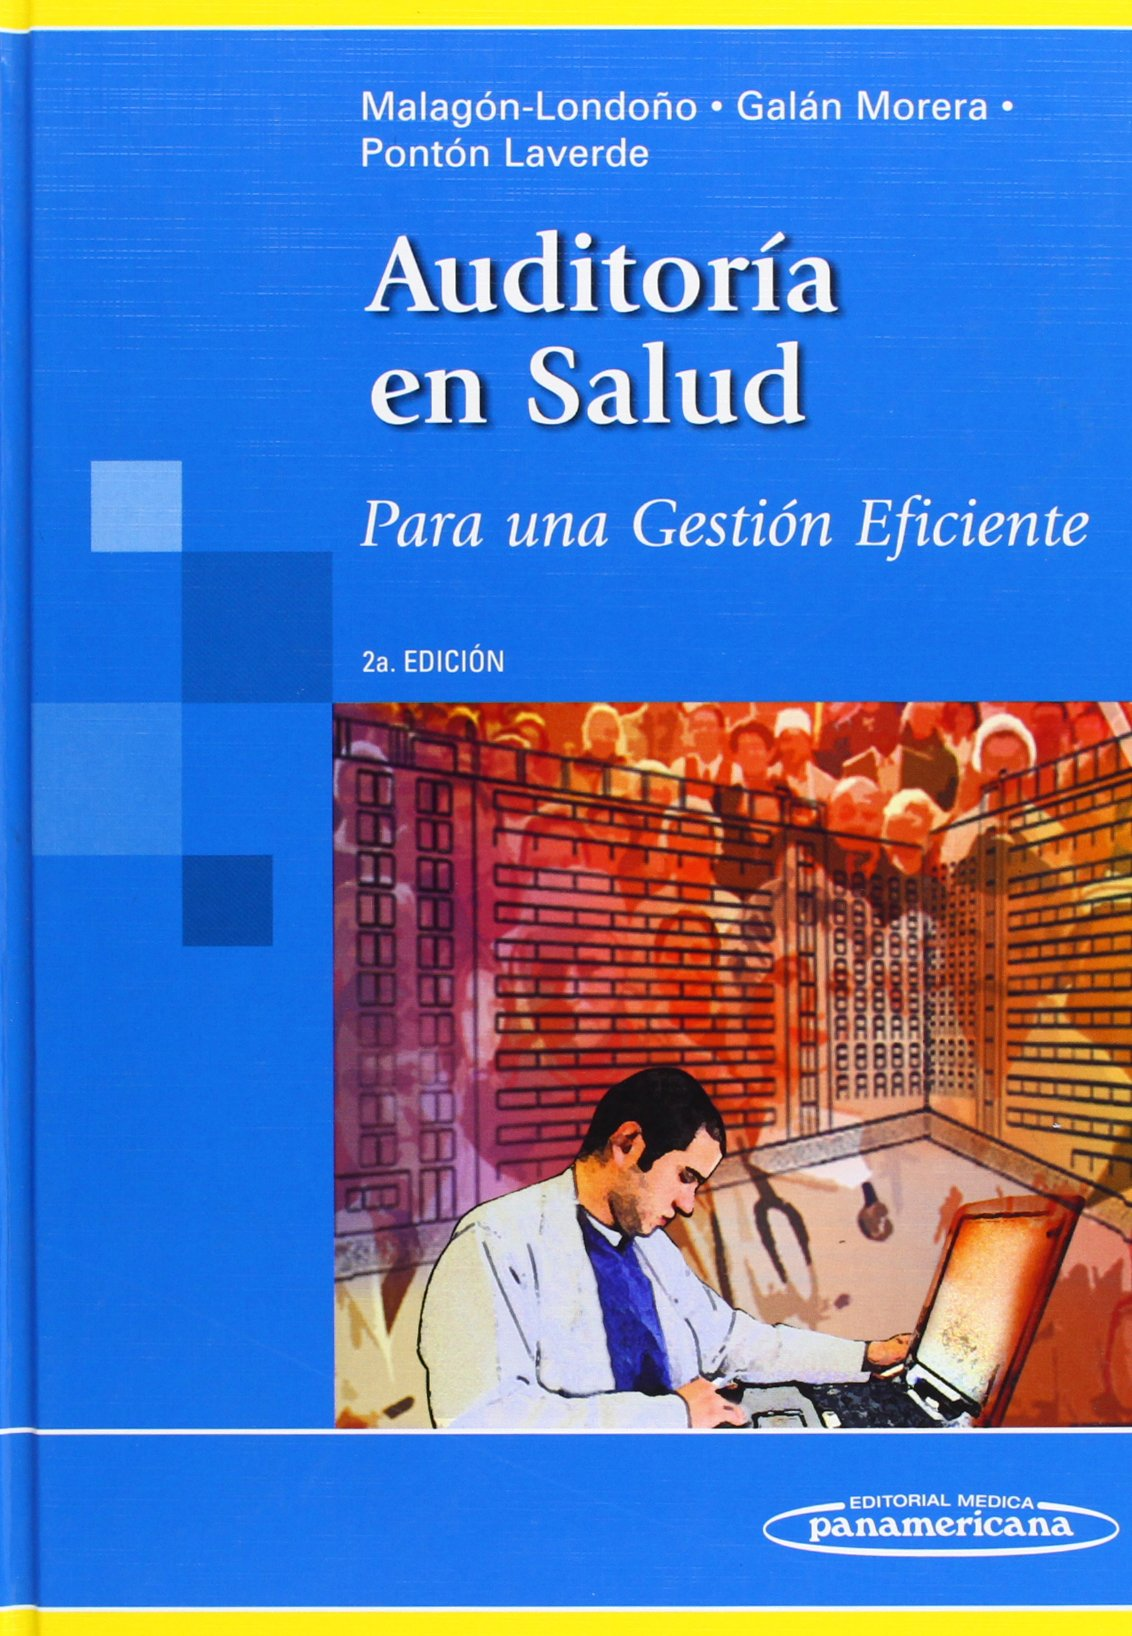 Auditoría en salud / Health Audit: Para una gestión eficiente / For Efficient Management (Spanish Edition) by Editorial Medica Panamericana Sa de